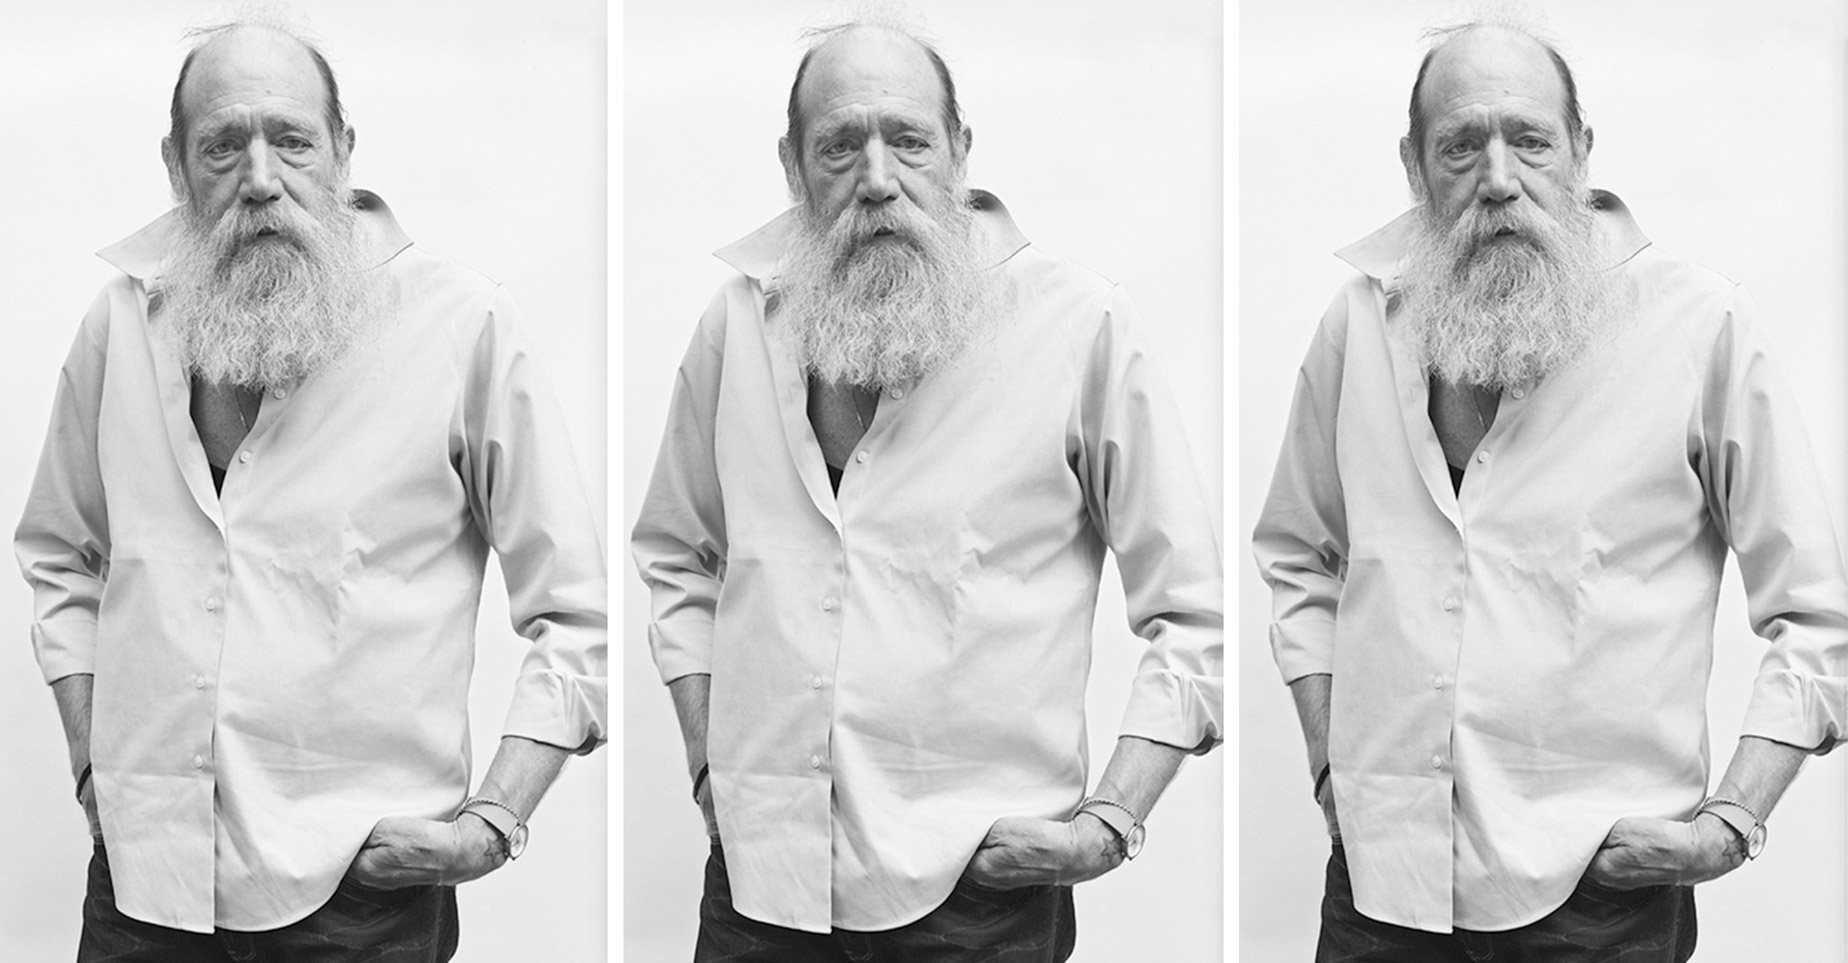 Lawrence Weiner | The Talks